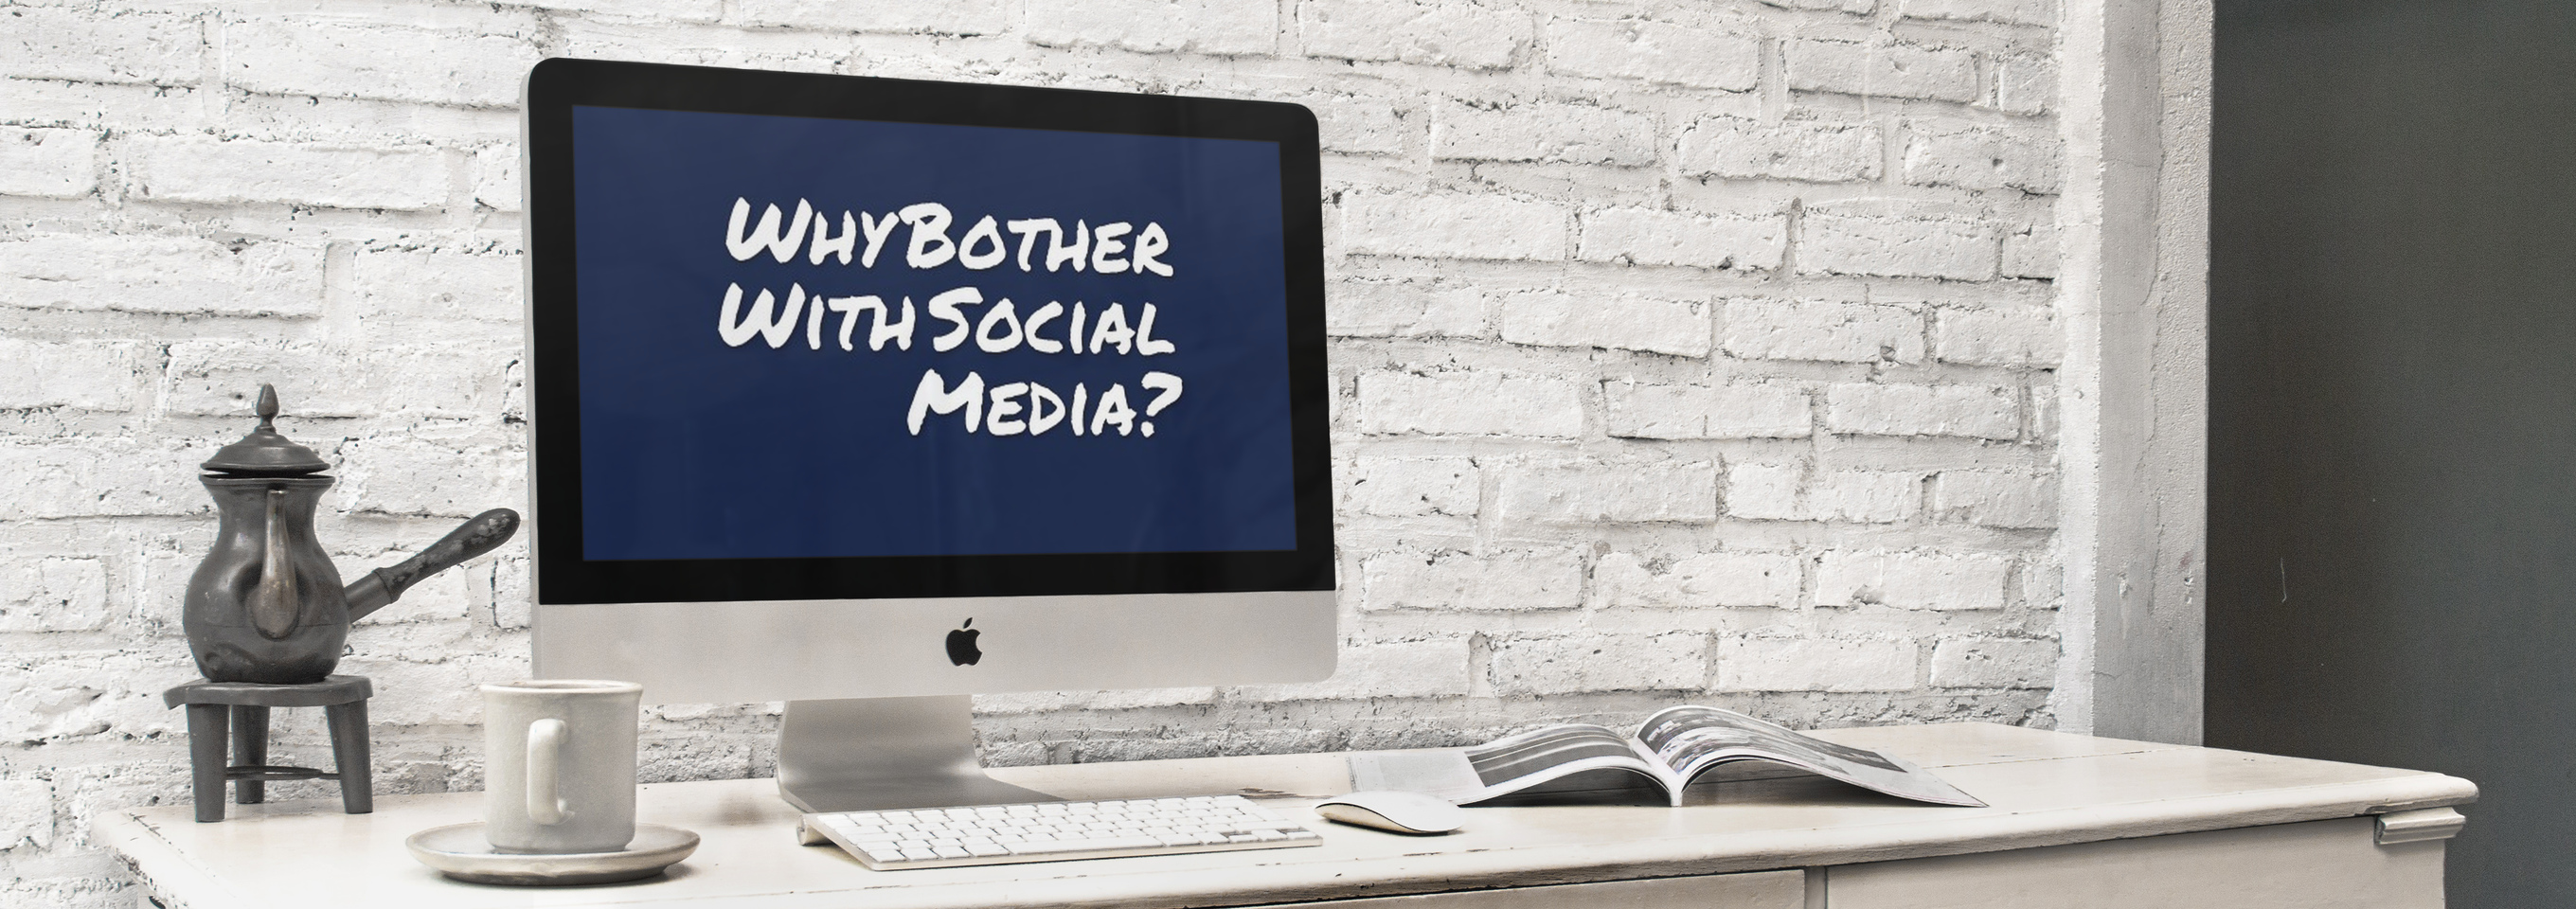 Why Bother With Social Media If You're A Doctor?